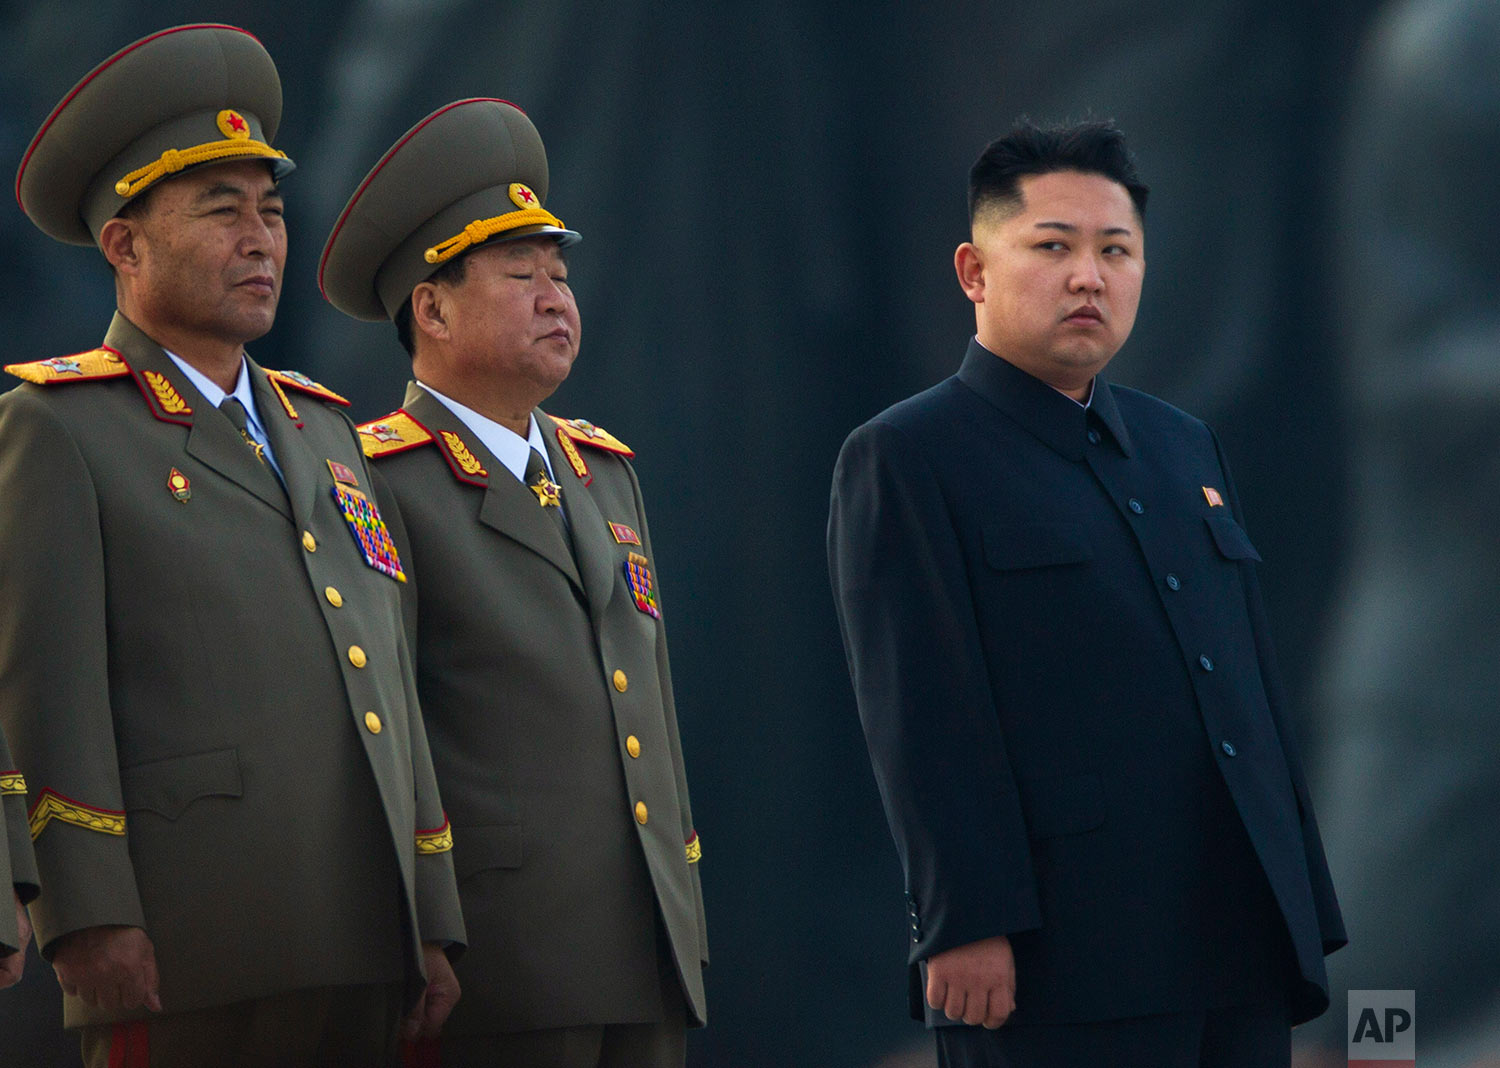 North Korean leader Kim Jong Un stands next to senior military leaders during a ceremony in honor of his father, Kim Jong Il, and grandfather, Kim Il Sung, in Pyongyang on April 13, 2012. (AP Photo/David Guttenfelder)